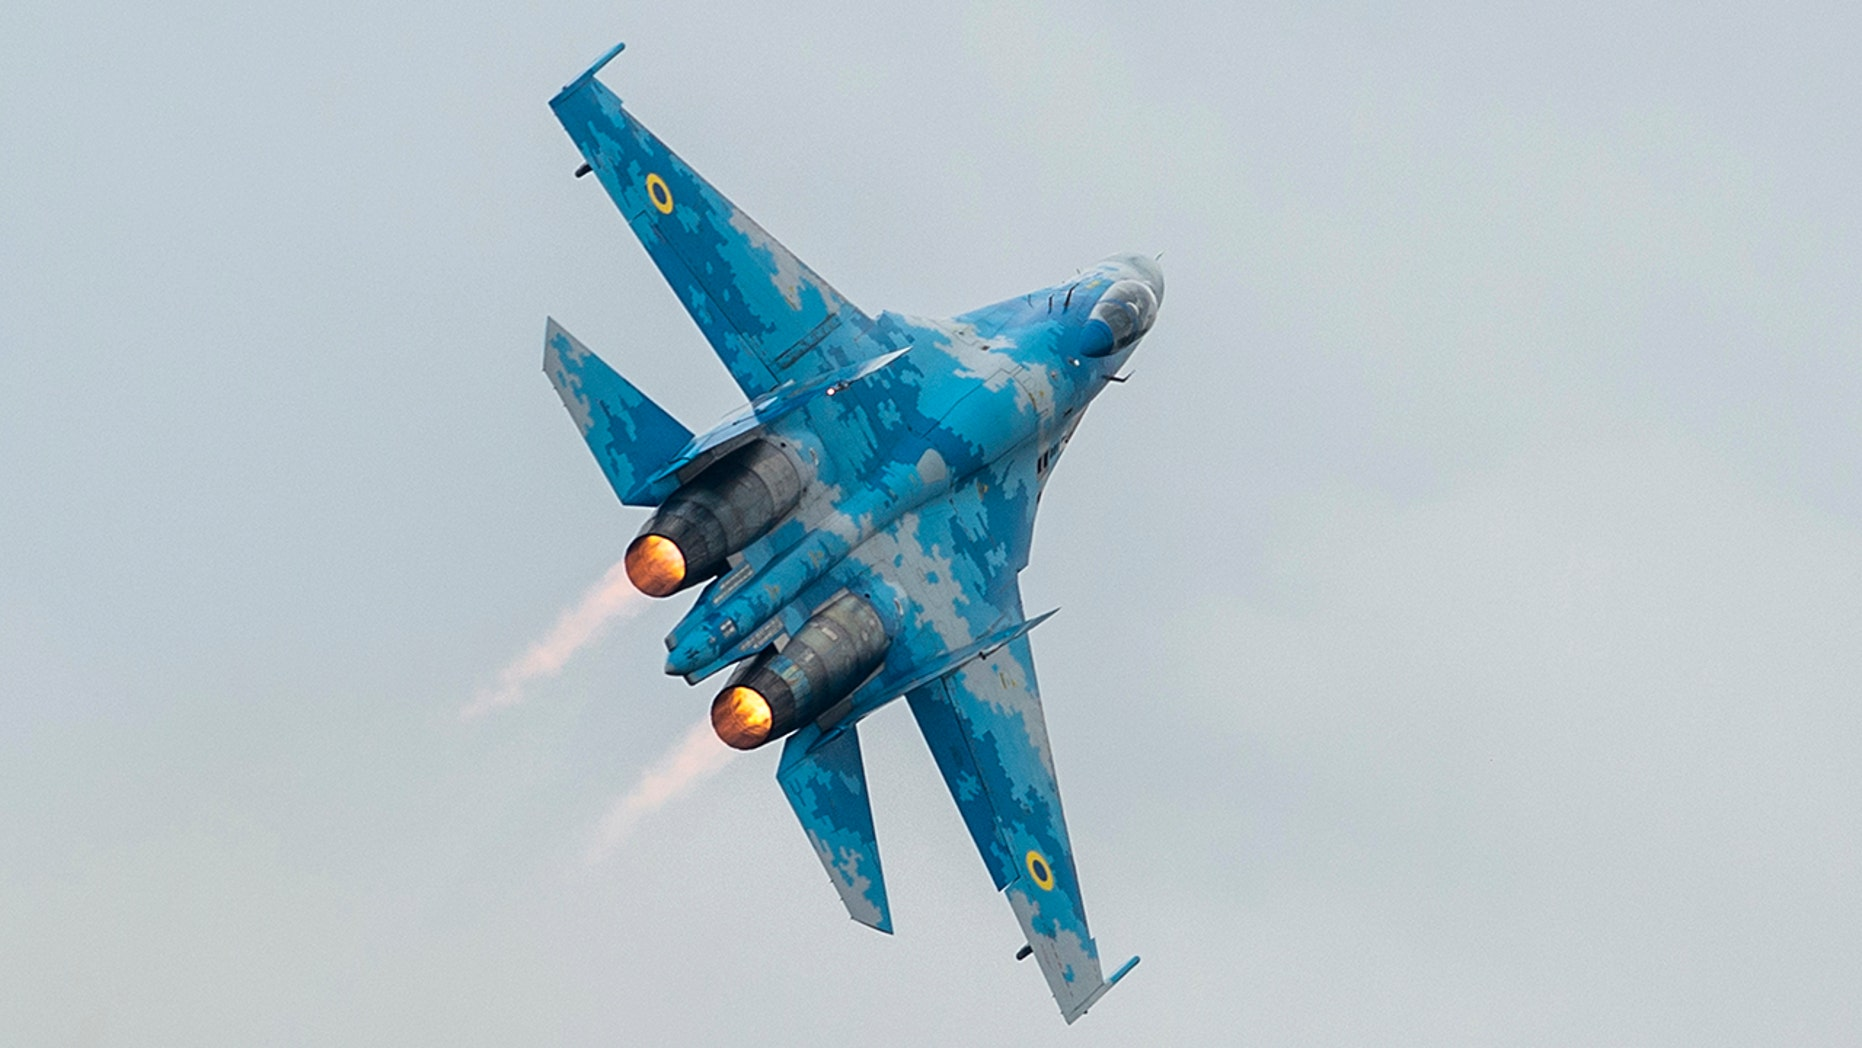 A Ukrainian Sukhoi Su-27 fighter jet is seen during an event last month. On Tuesday, an American pilot on board a similar aircraft was killed when it crashed during a military training in Ukraine.